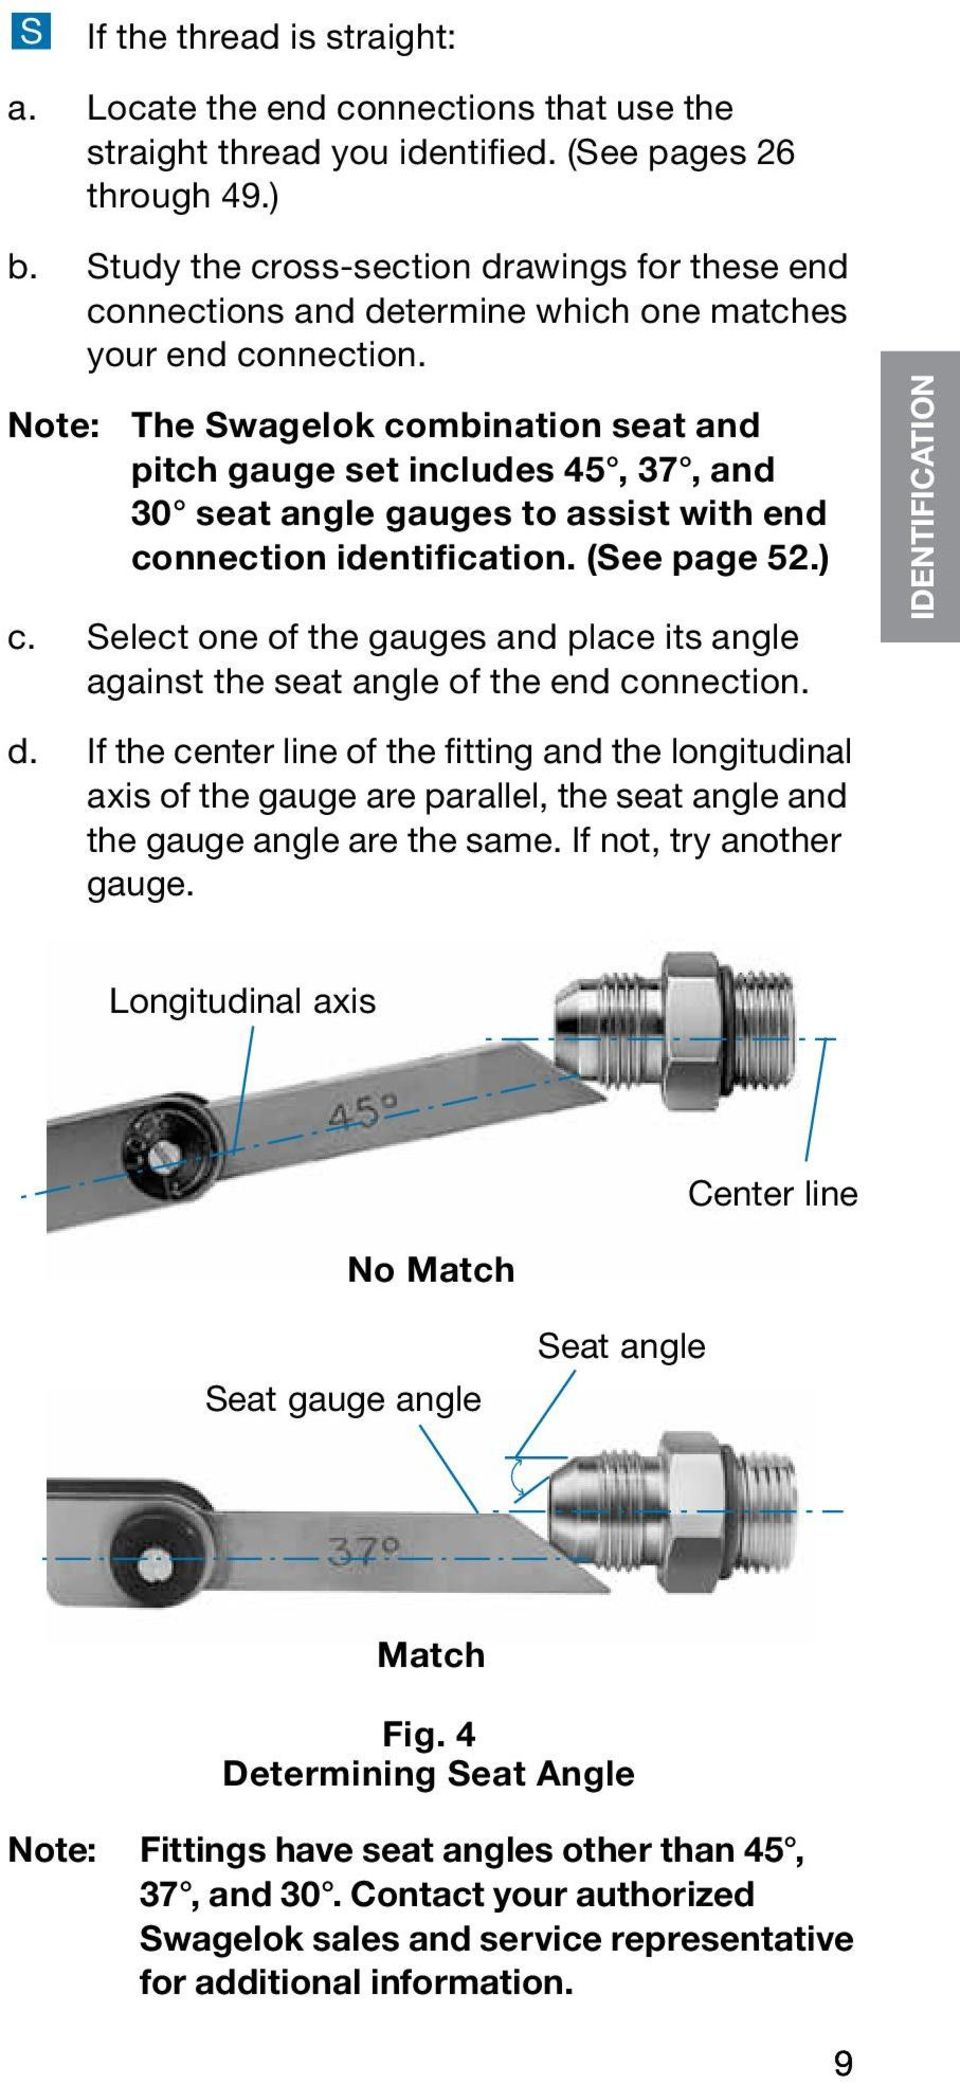 Note: The Swagelok combination seat and pitch gauge set includes 45, 37, and 30 seat angle gauges to assist with end connection identification. (See page 52.) c.